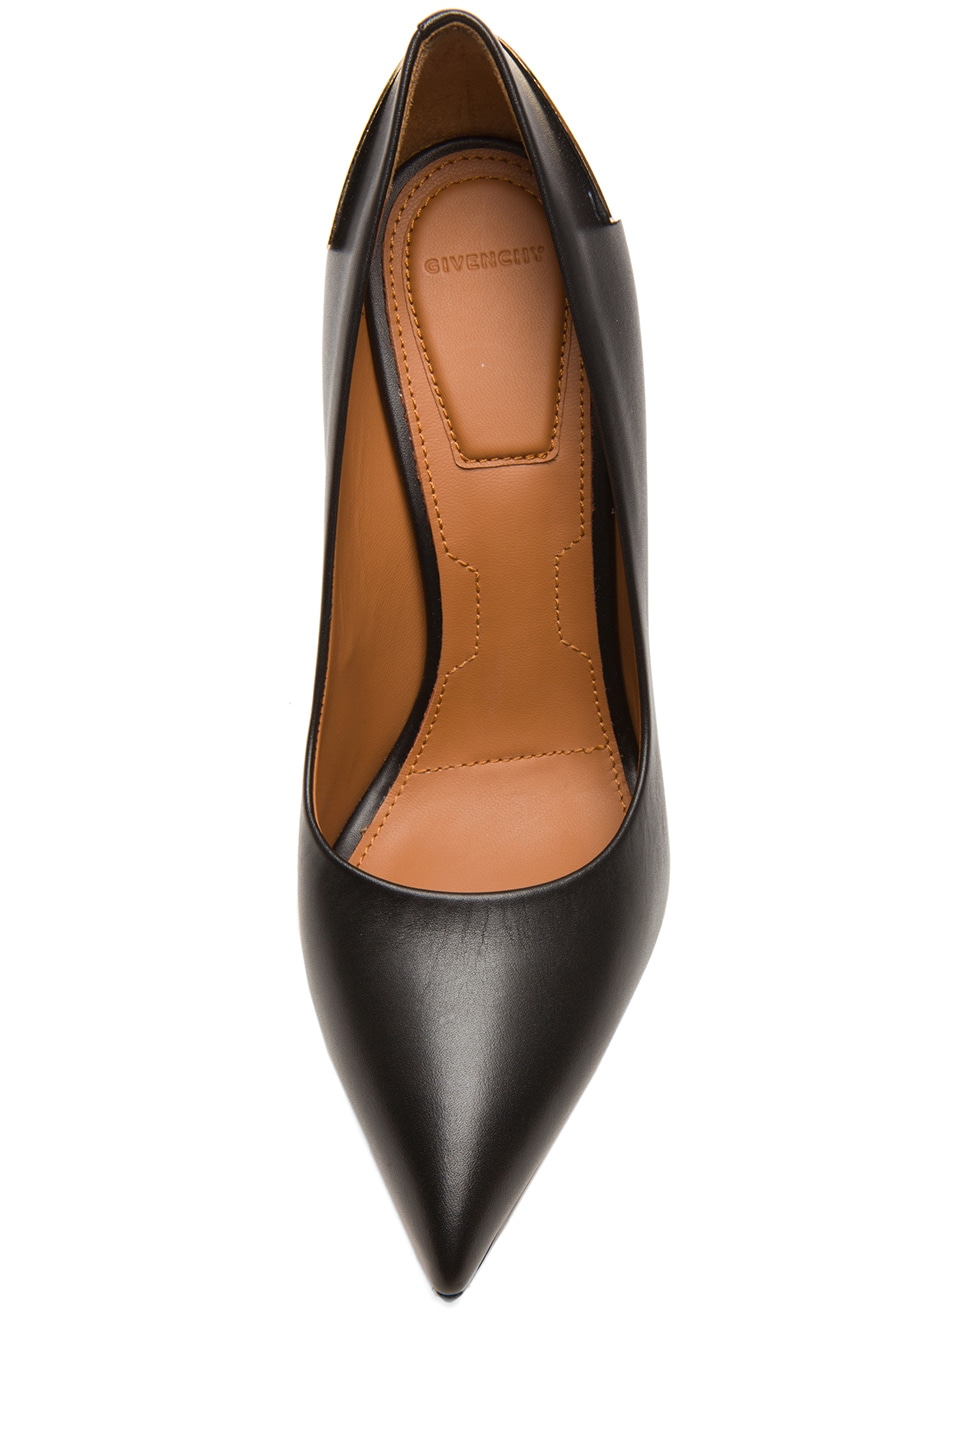 Image 4 of Givenchy Calfskin Leather Pumps in Black